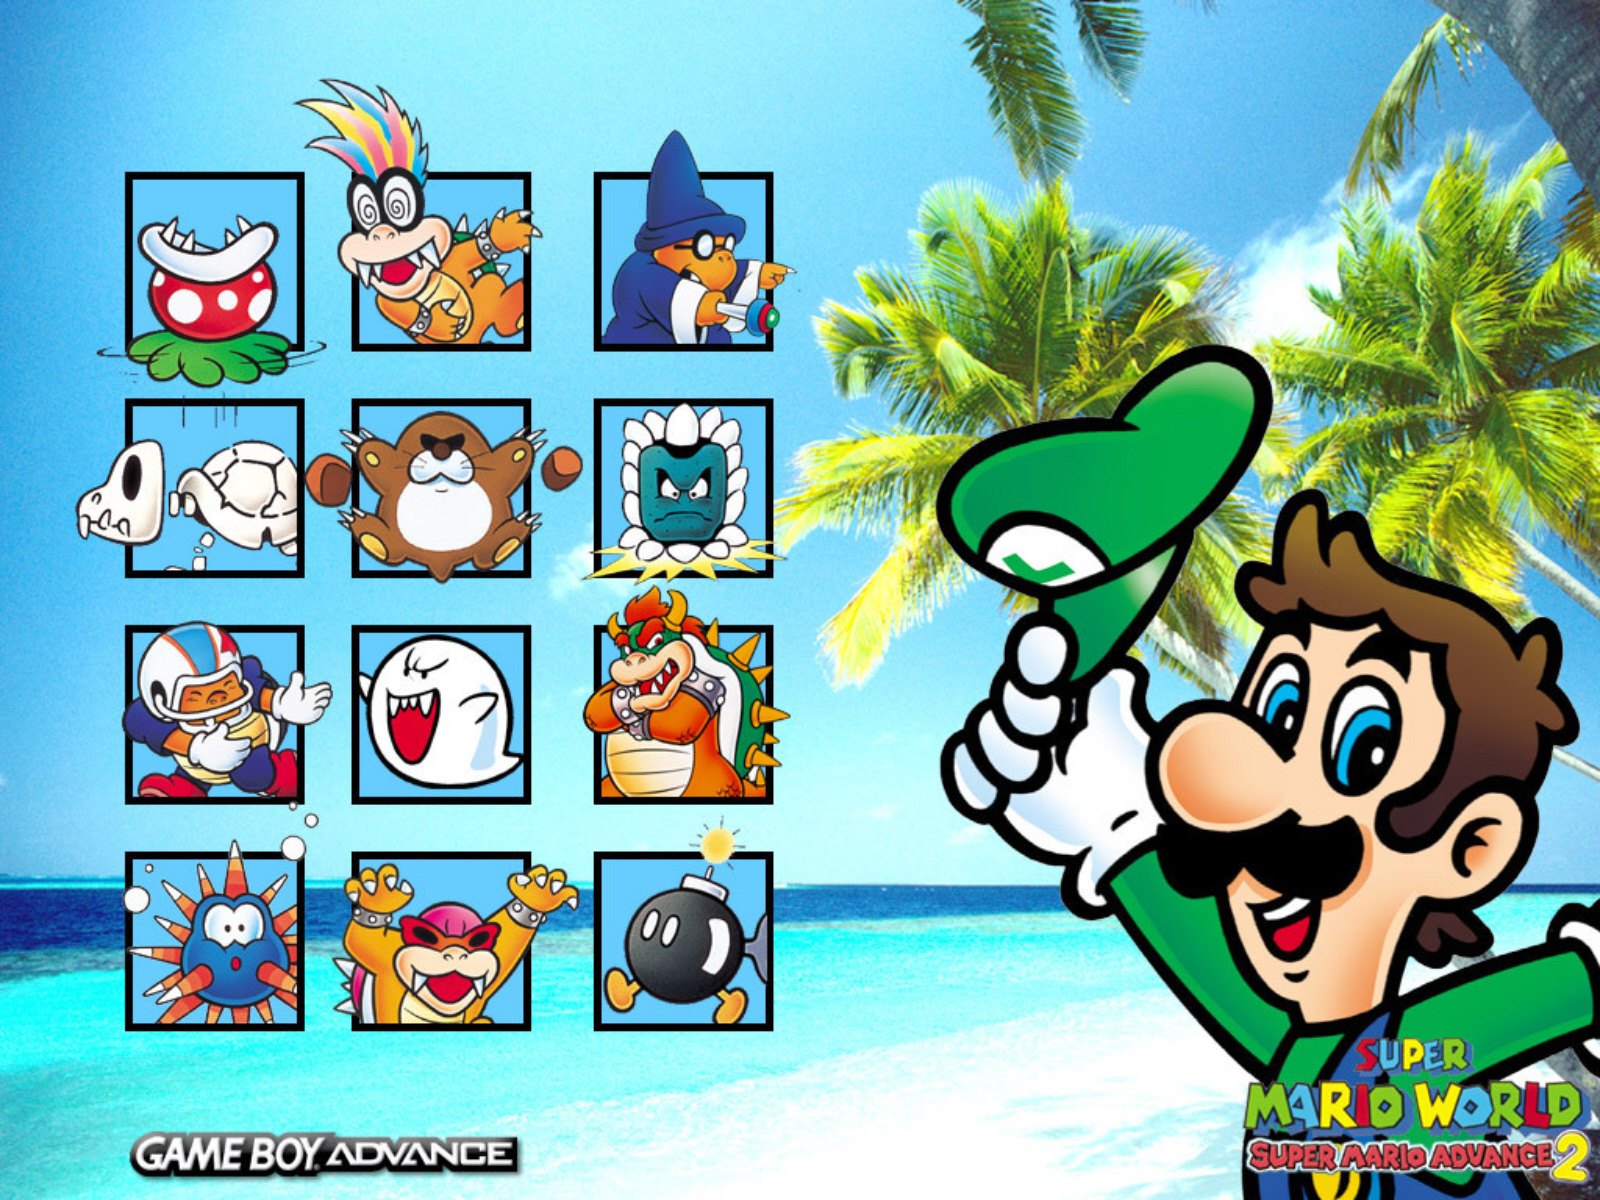 Super mario world 2012 re playing marios 16bit masterpiece super mario world luigi wallpaper altavistaventures Gallery